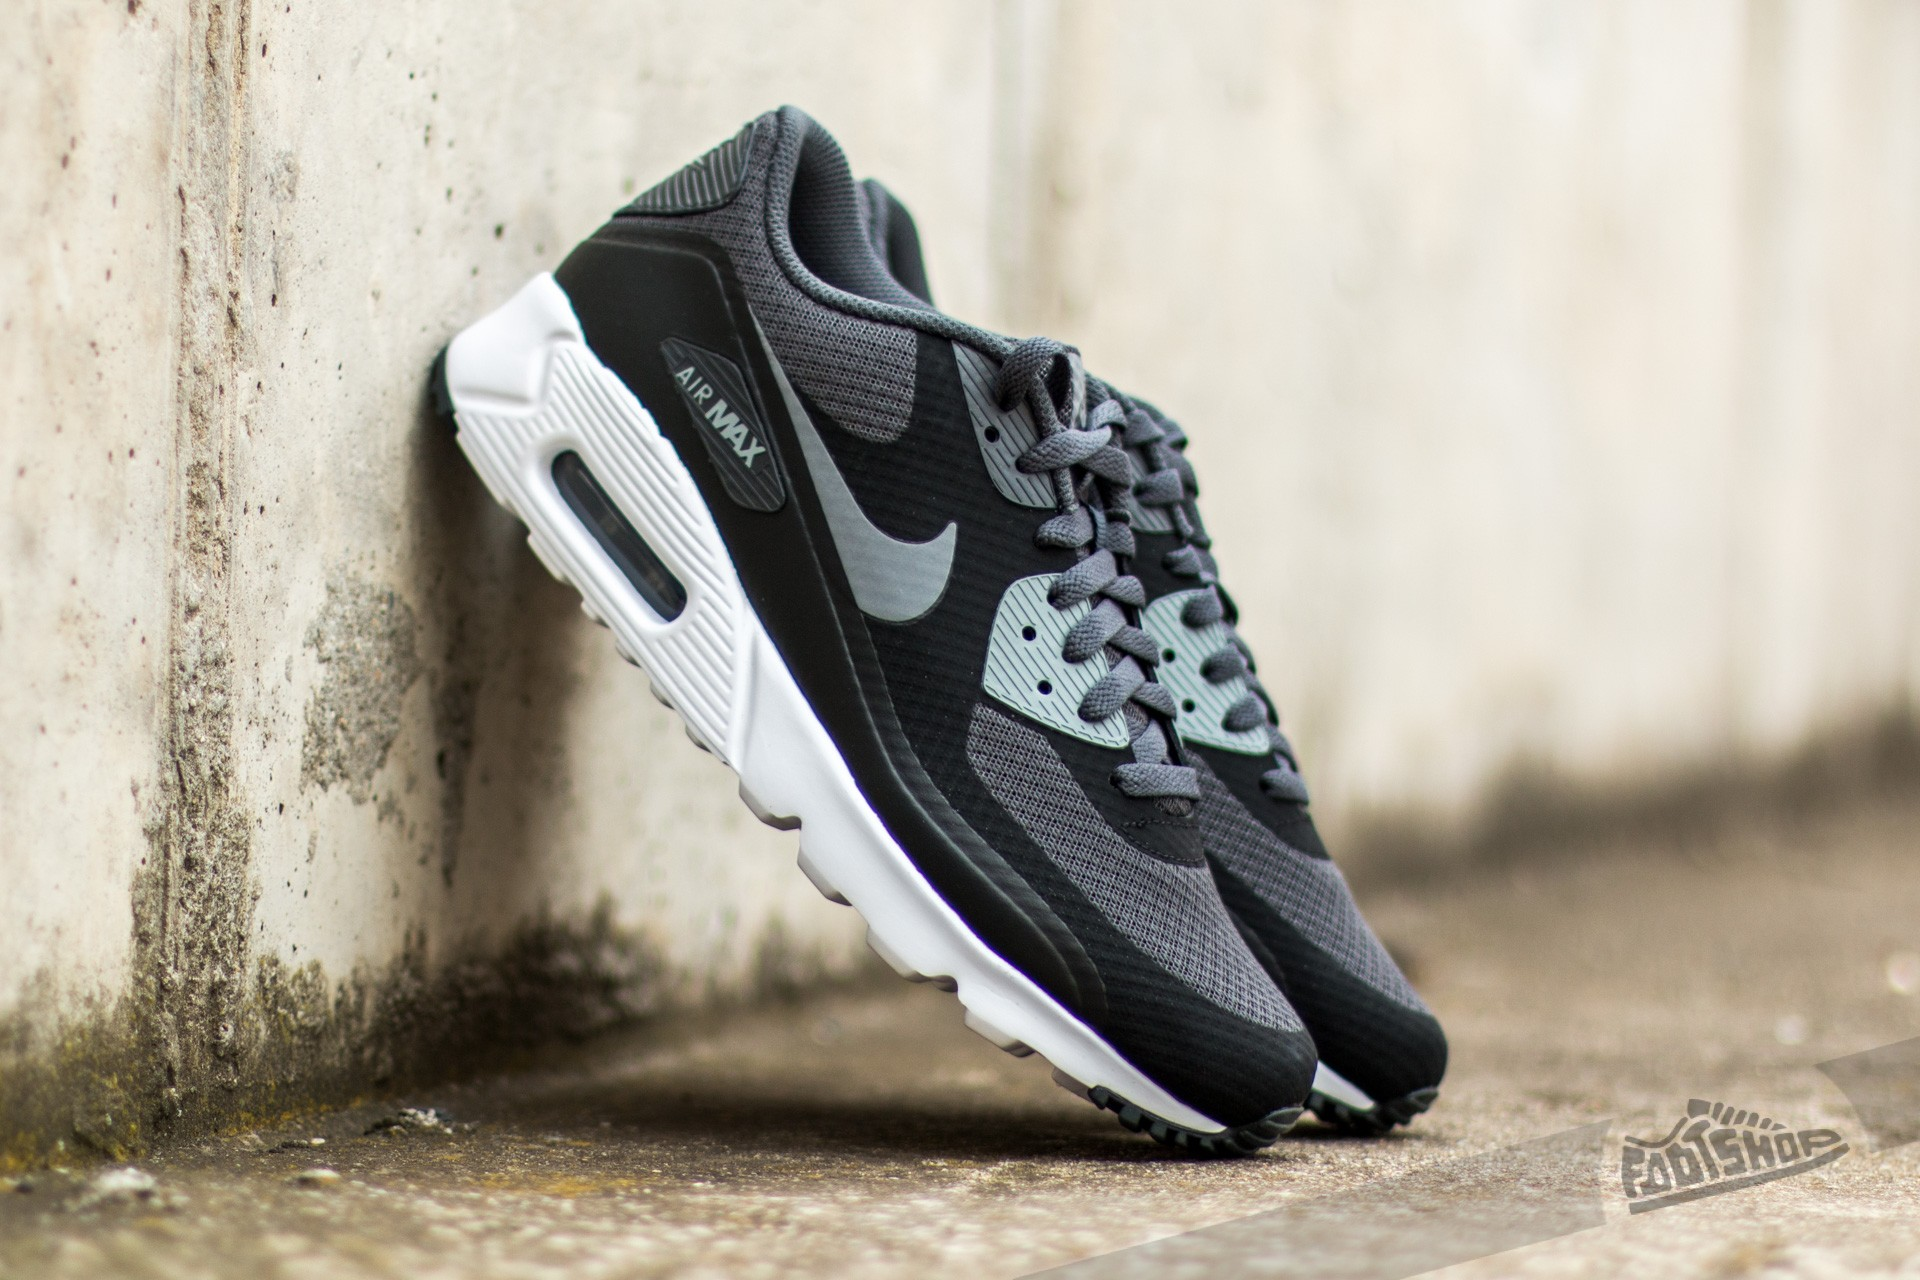 Nike Air Max 90 Anthracite White Black Cool Grey